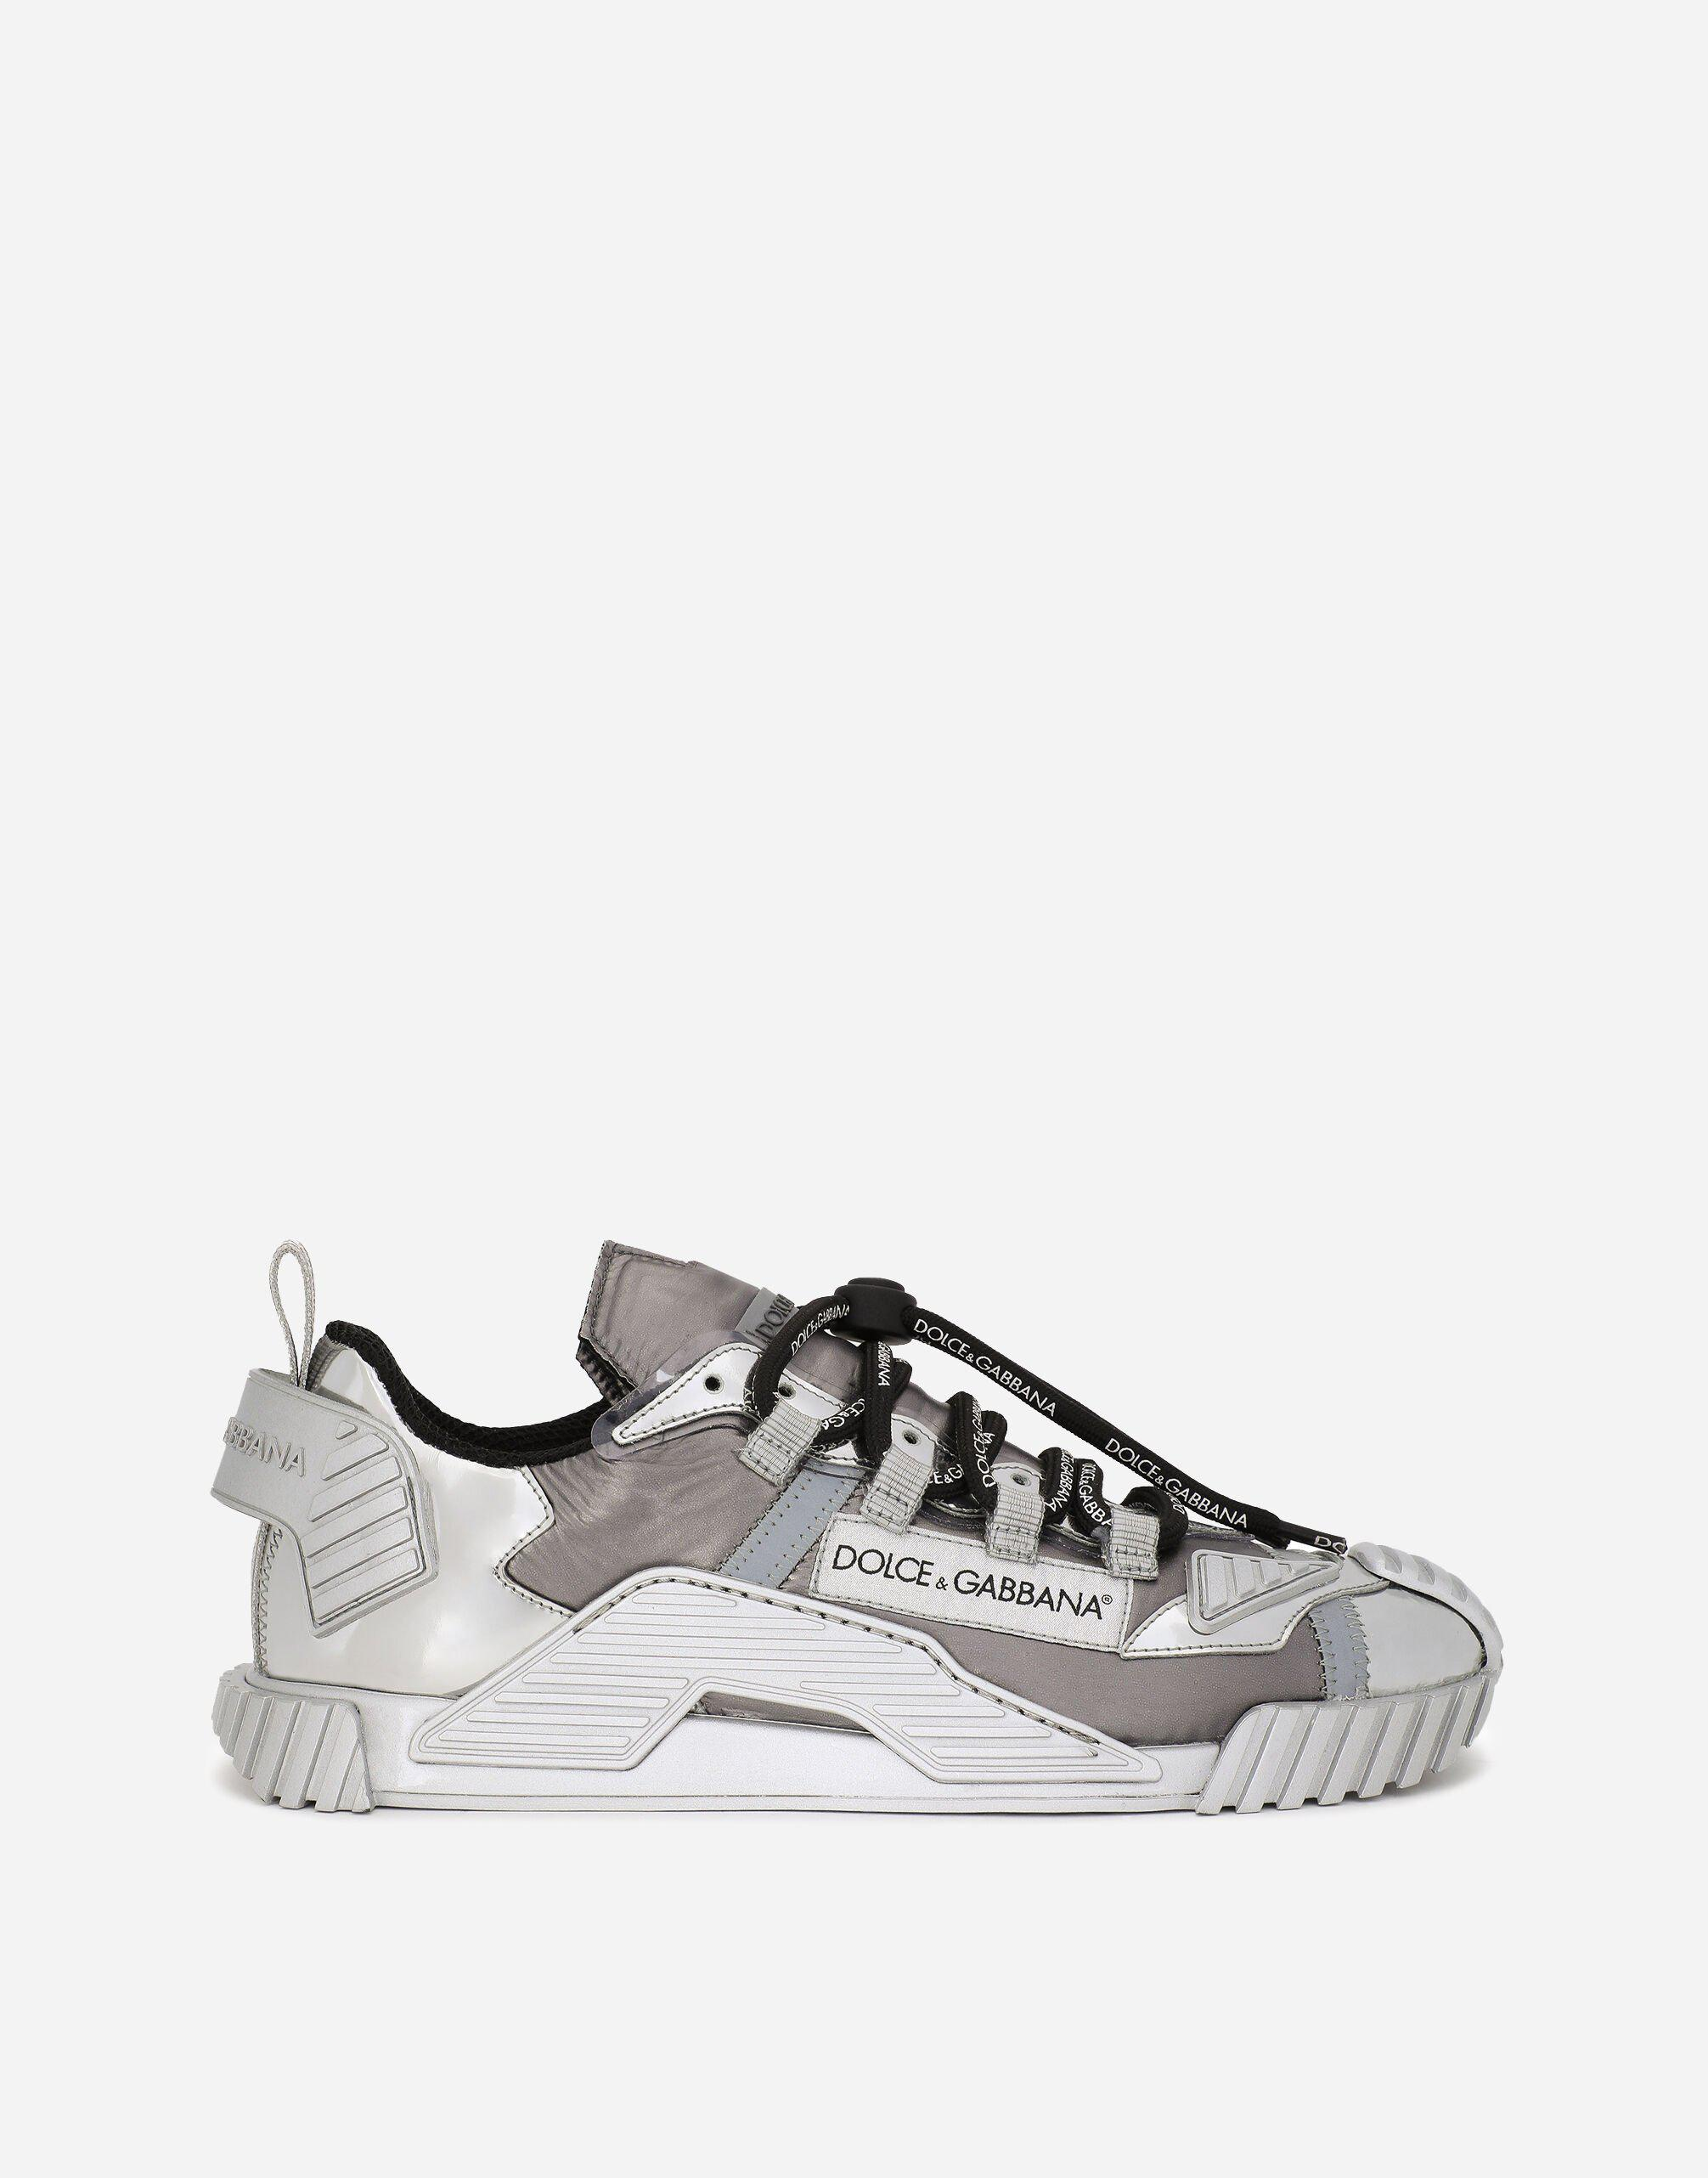 Foiled fabric NS1 sneakers